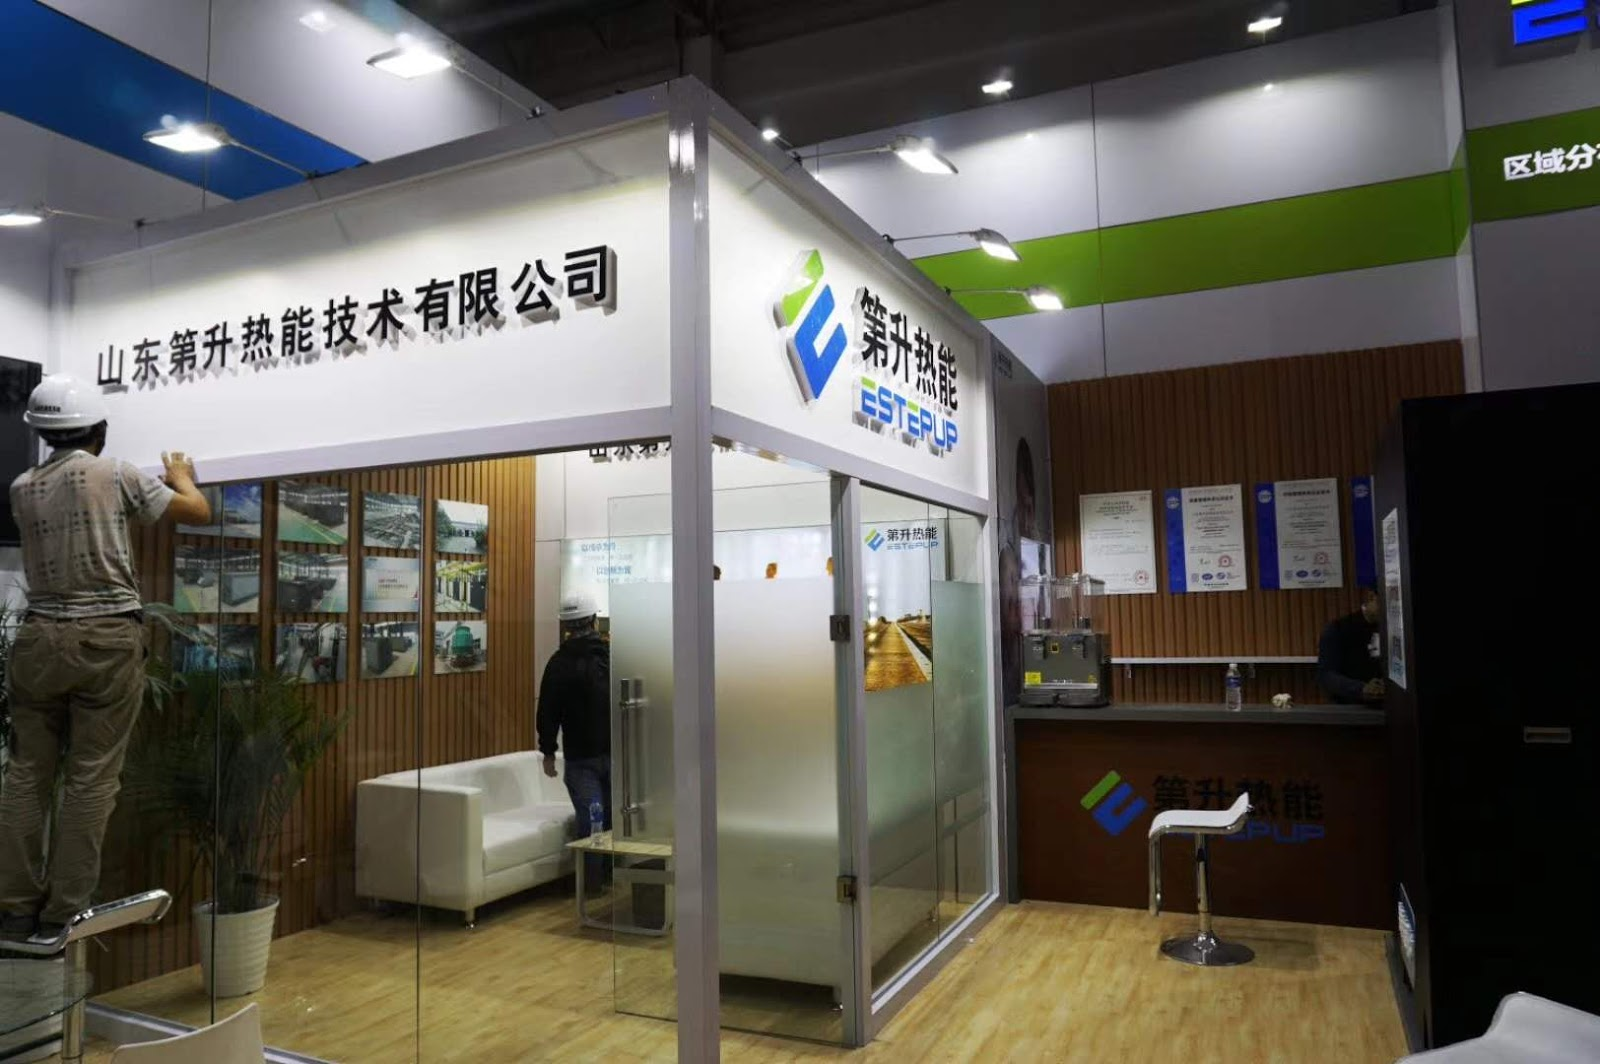 Exhibition Booth Installation : Exhibit display booth stand contractor builder in china yoho expo